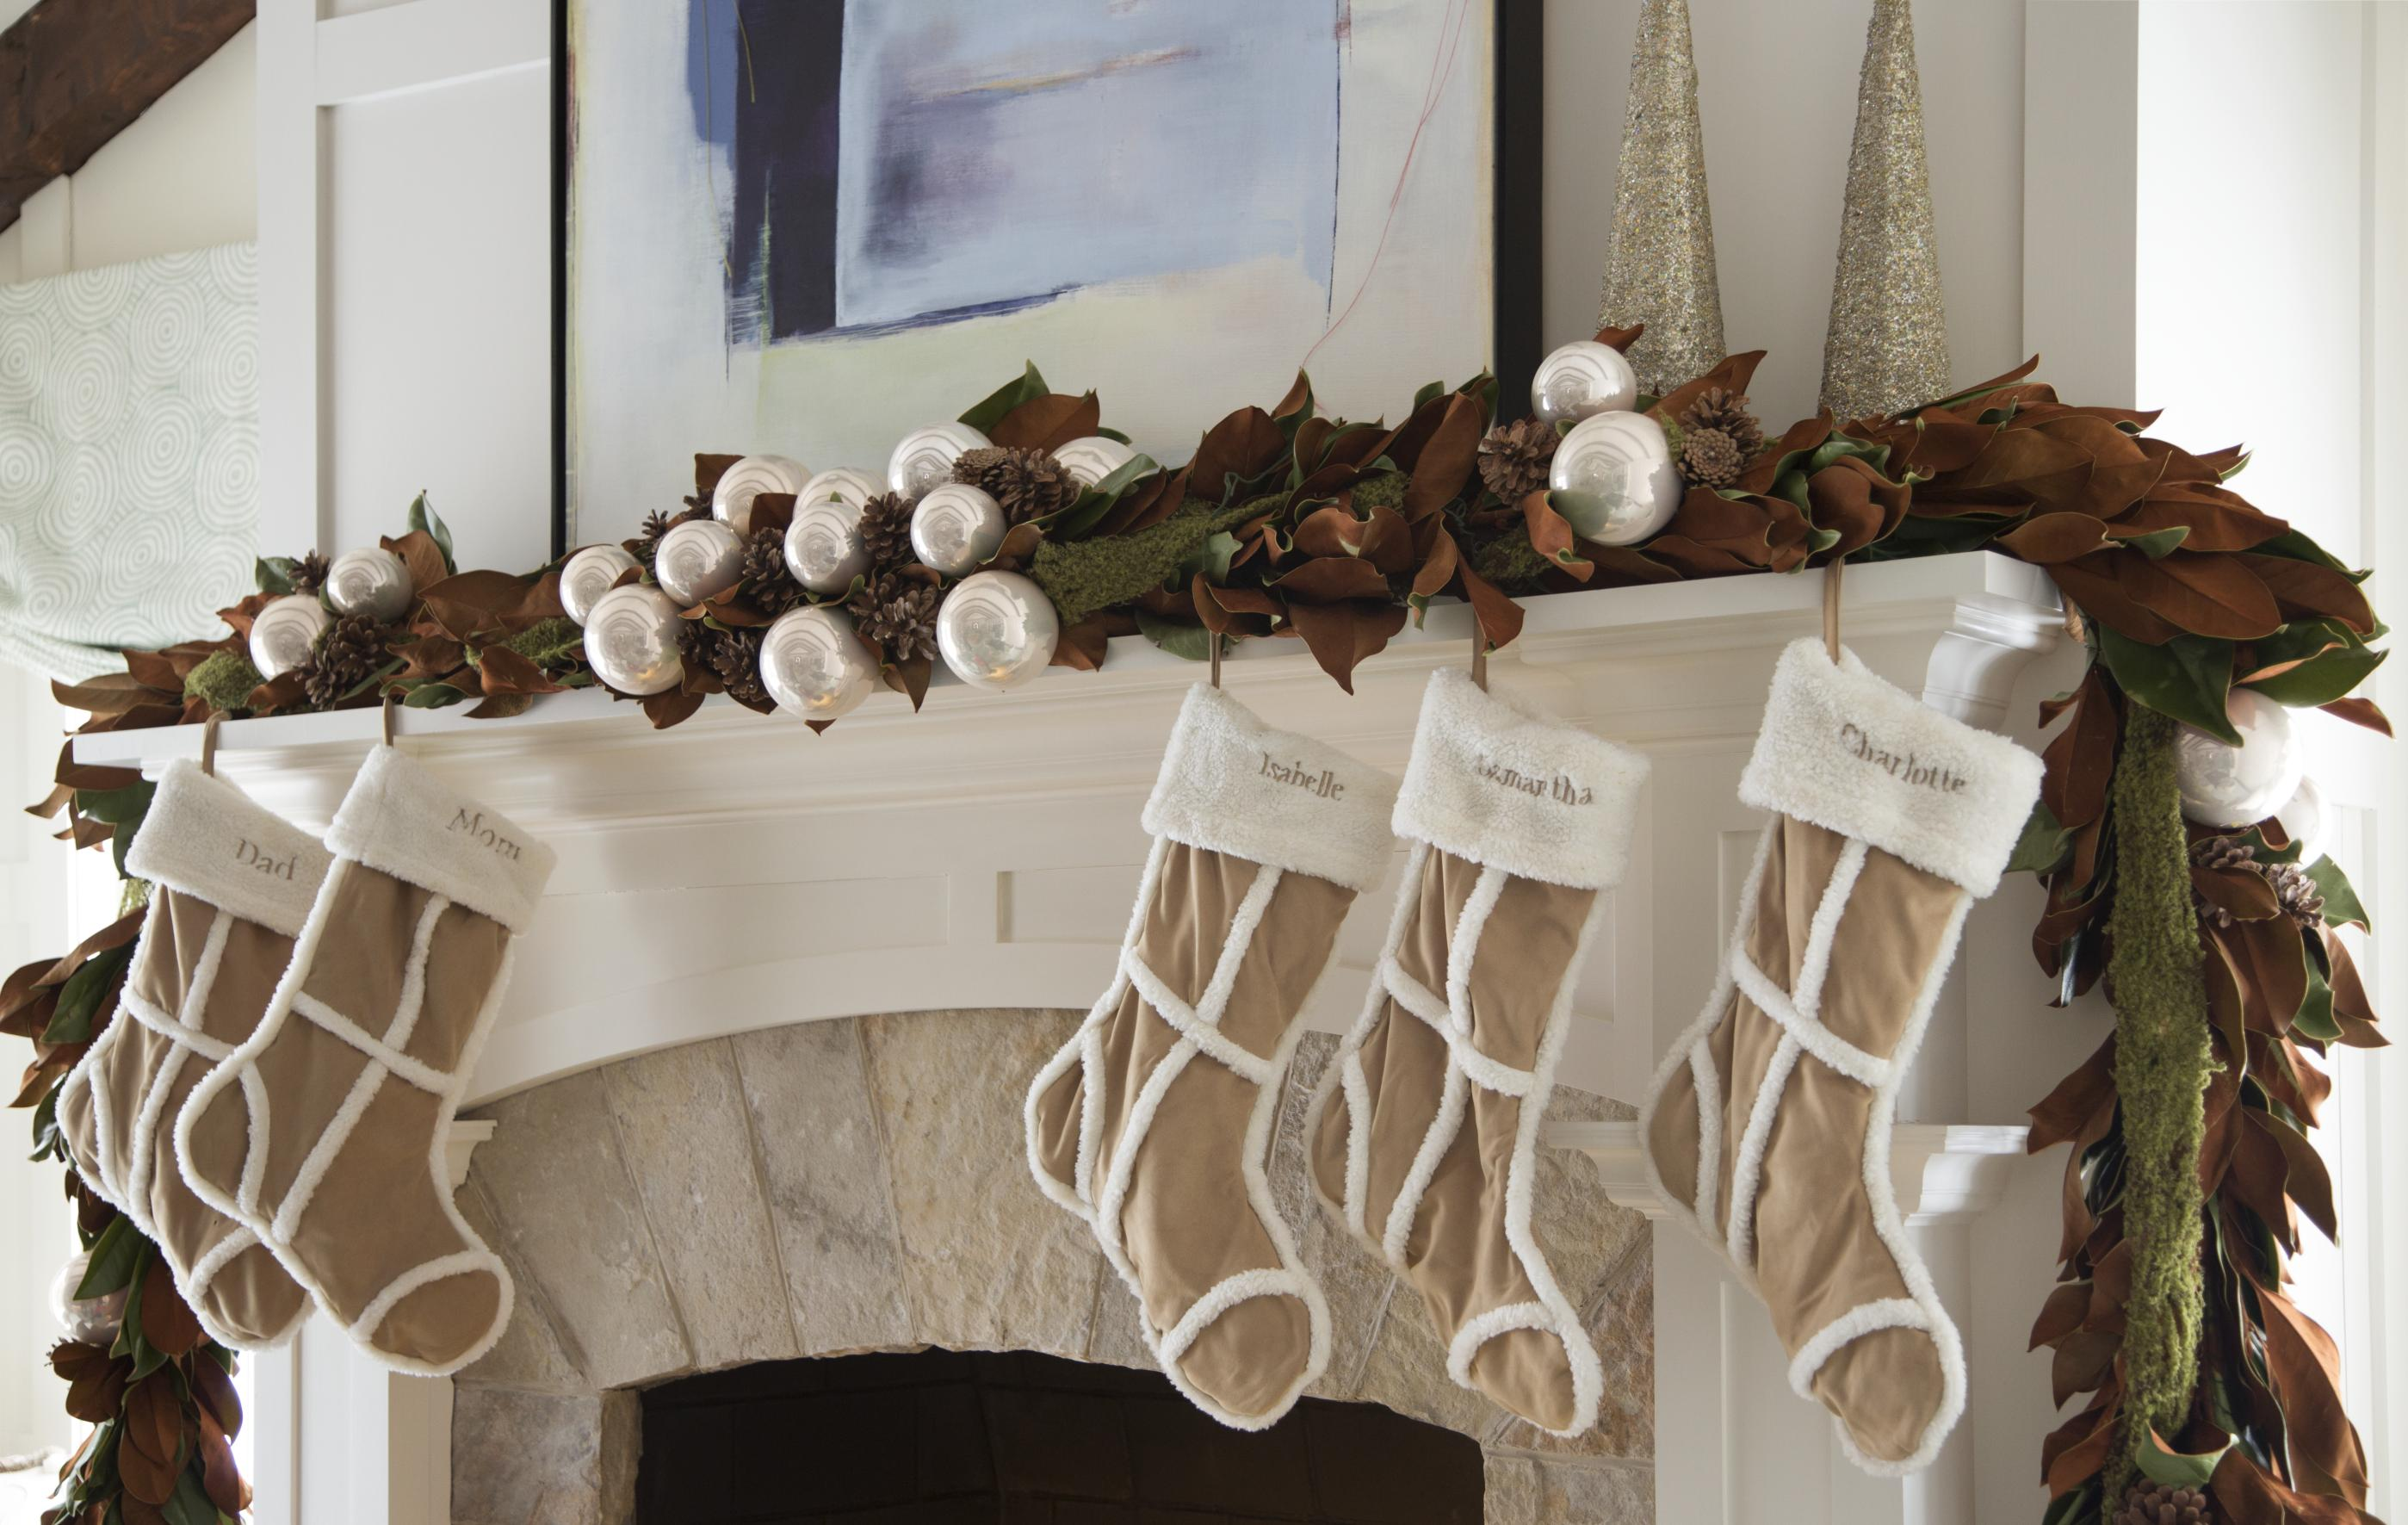 enlarge - Decorating Your Mantel For Christmas